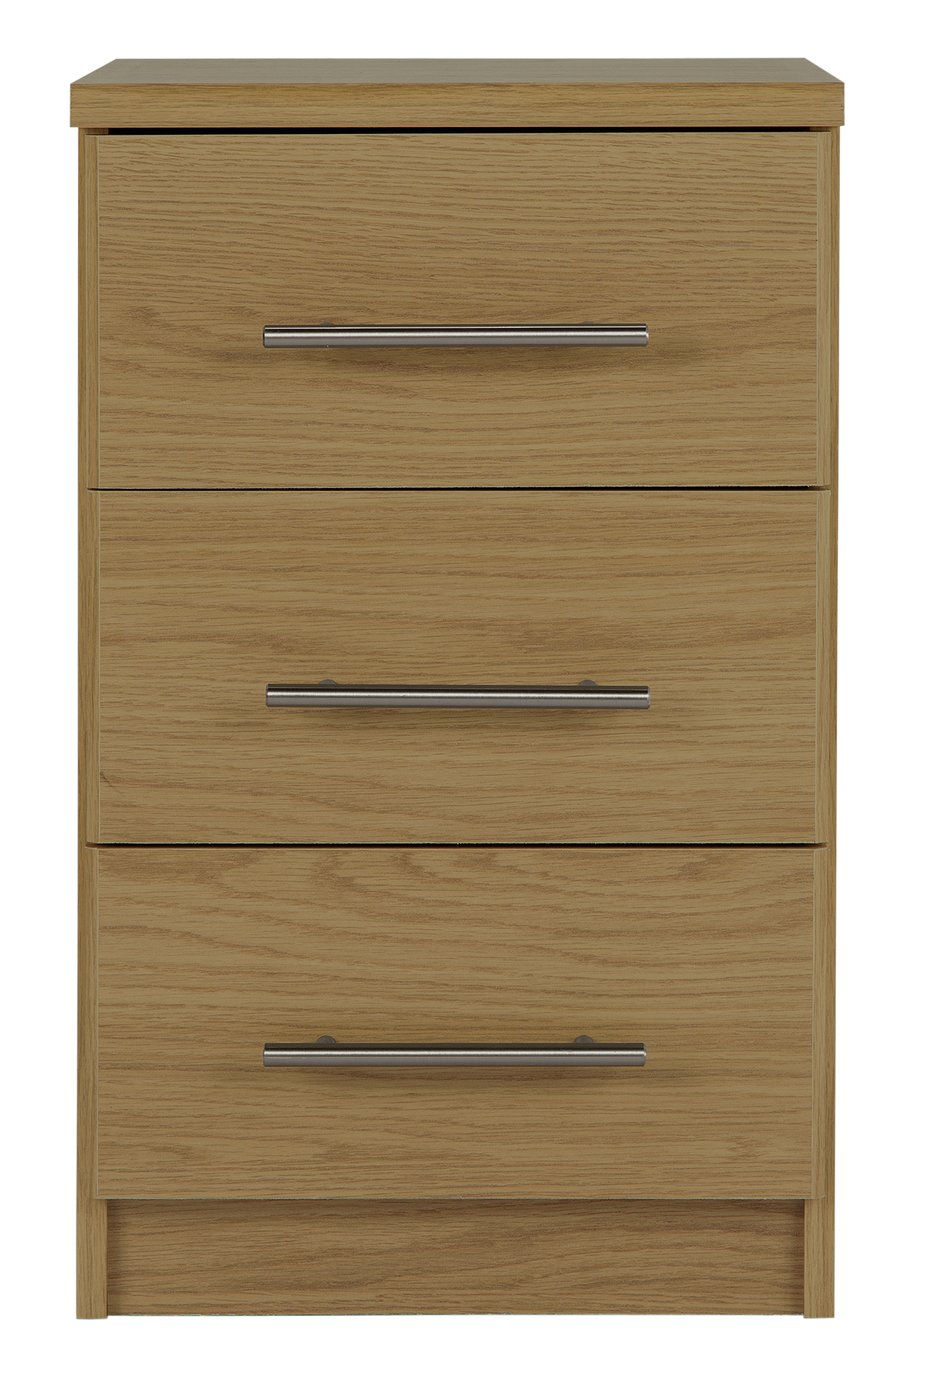 Argos Home Normandy 3 Drawer Bedside Chest